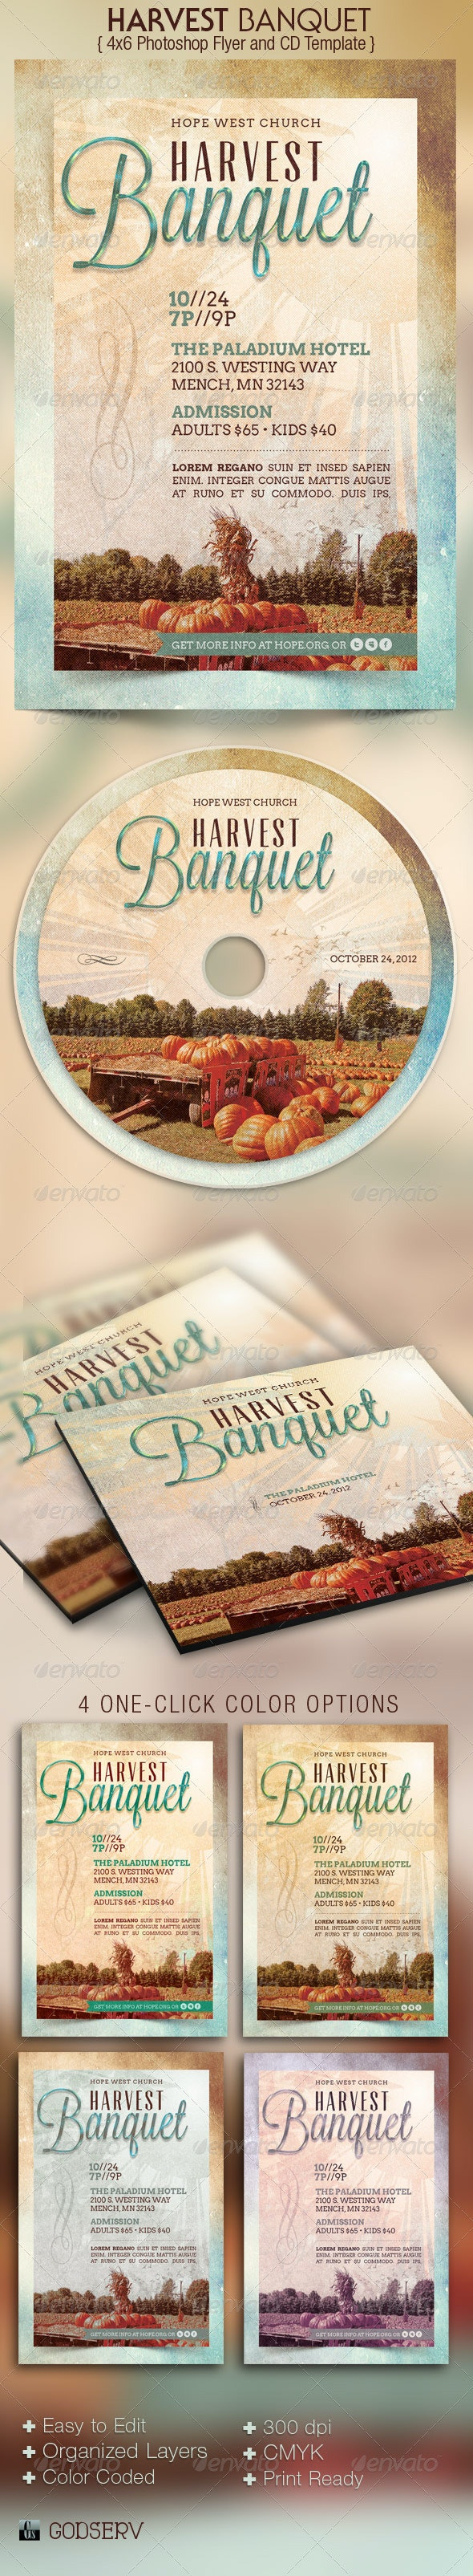 Harvest Banquet Church Flyer CD Template - Church Flyers